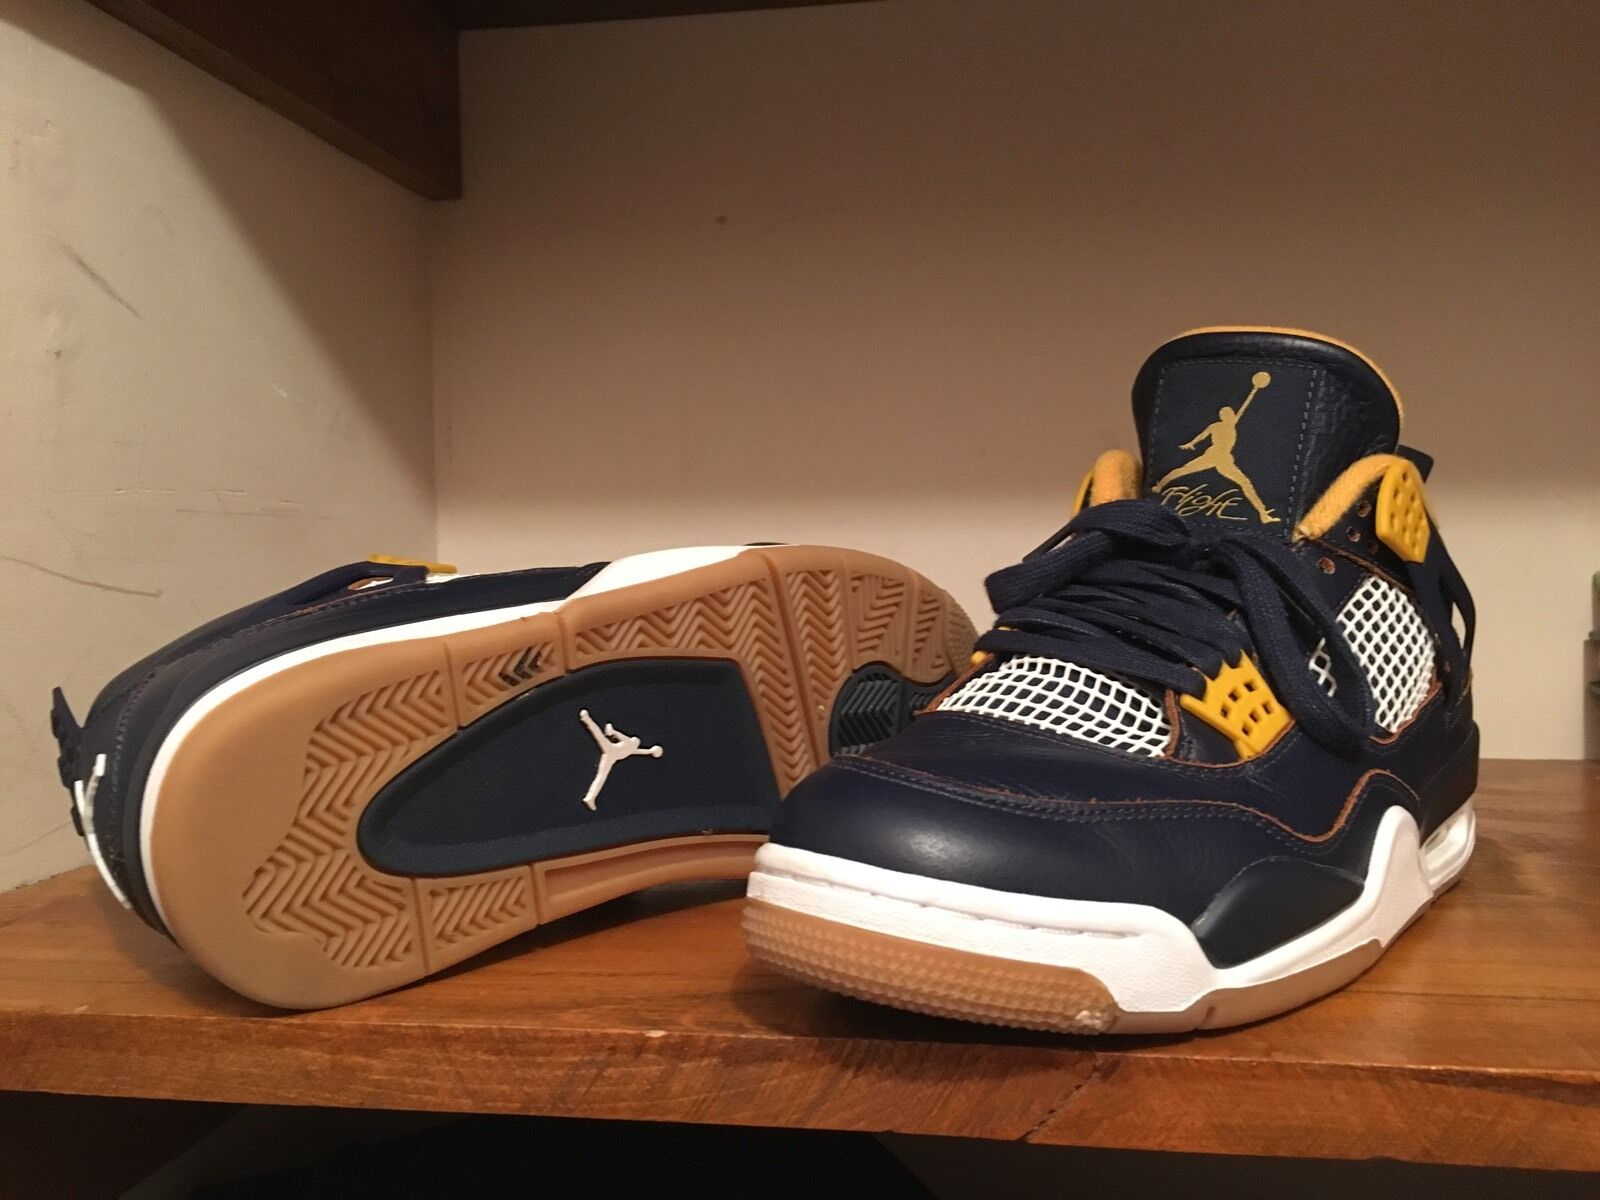 Jordan 4 Dunk From Above  Cheap and fashionable